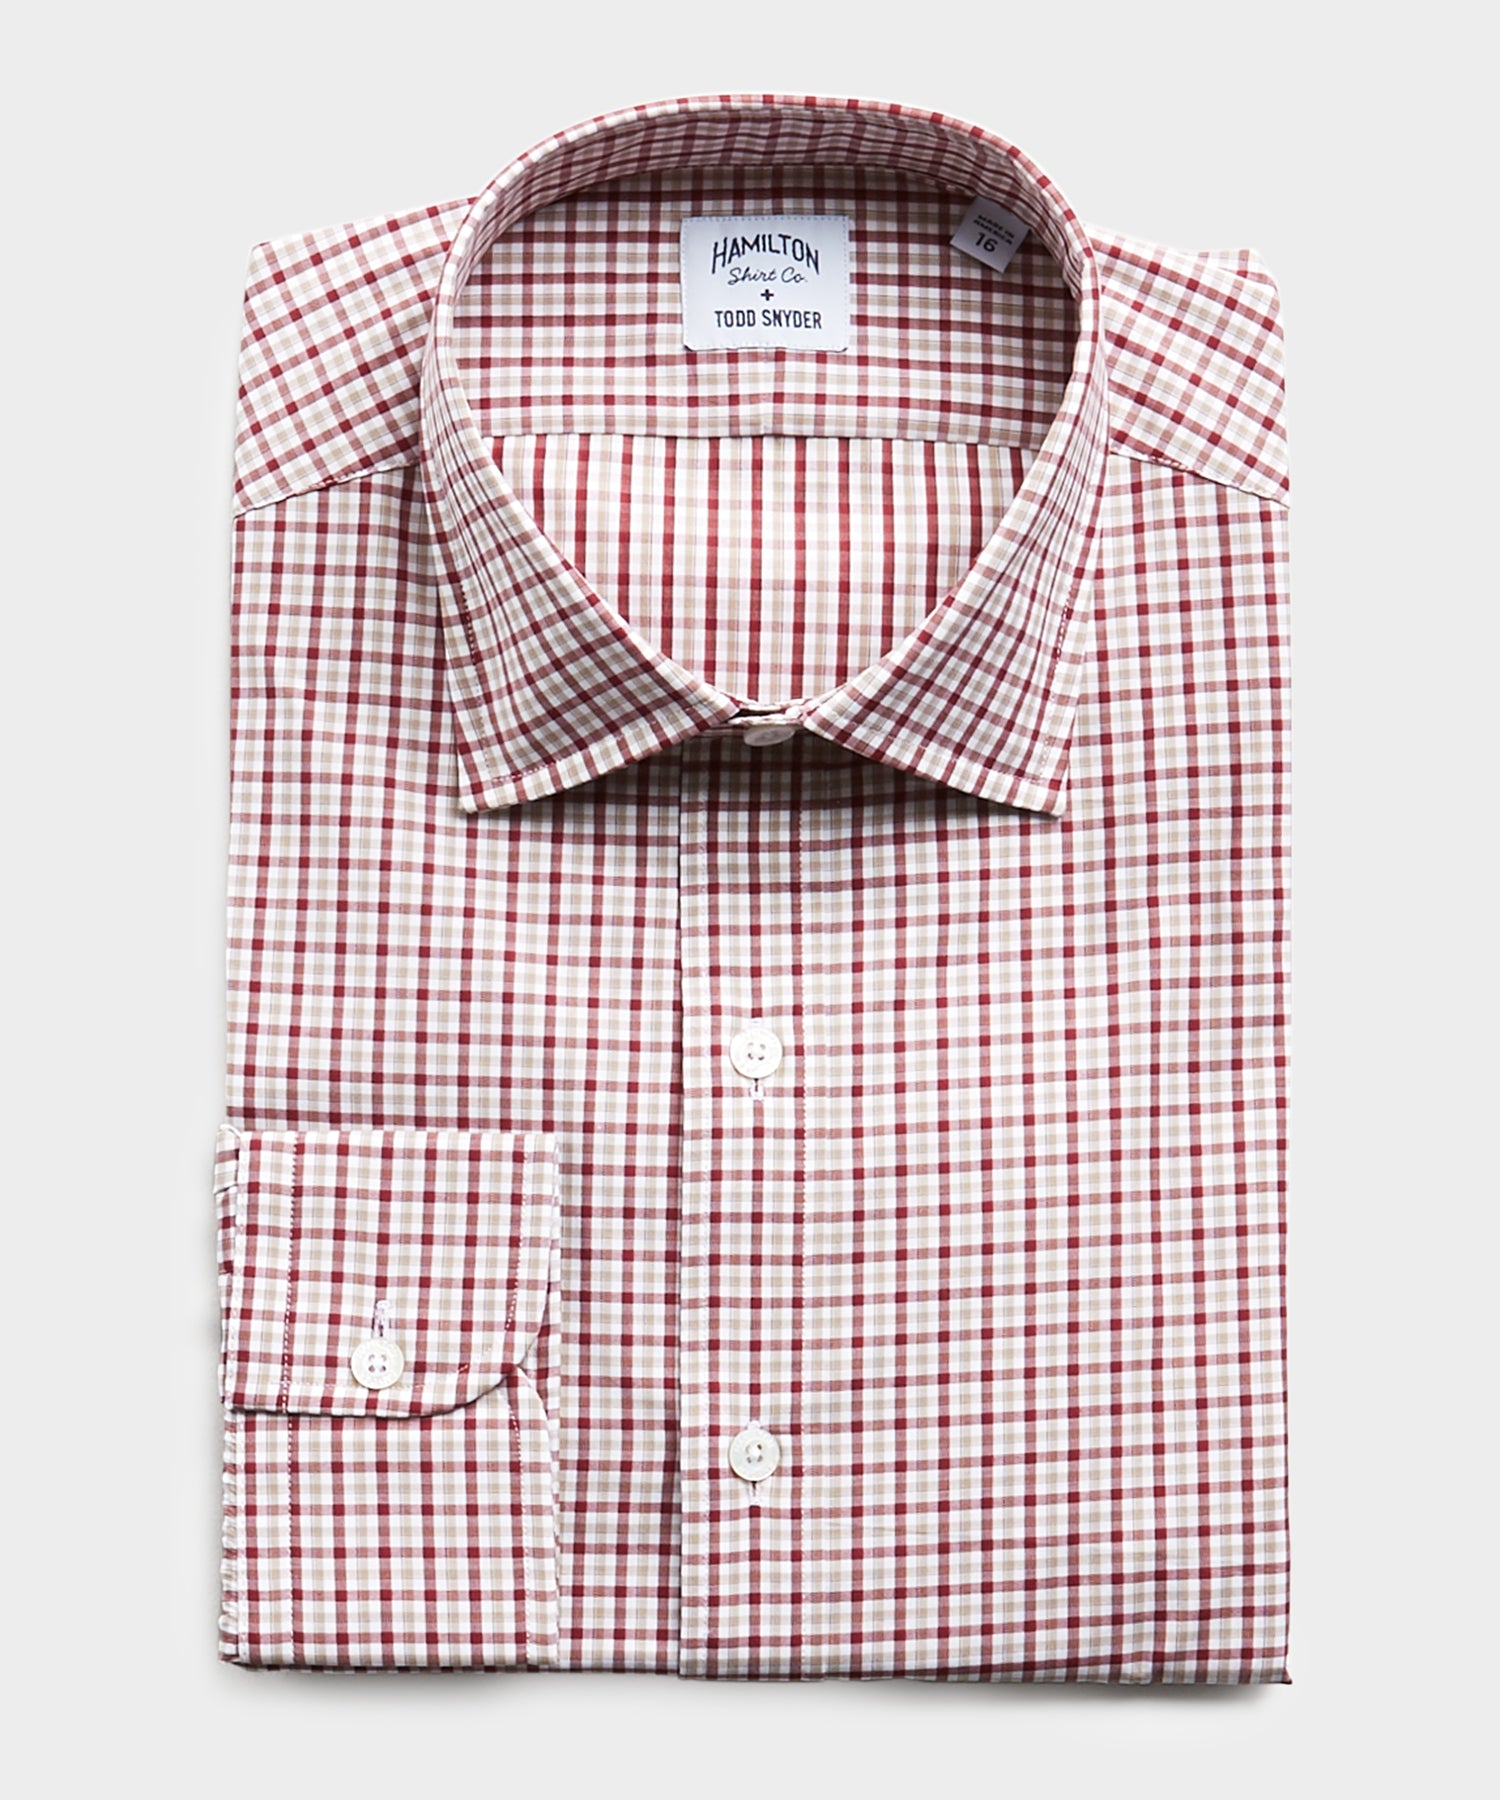 Made in USA Hamilton + Todd Snyder Gingham Dress Shirt